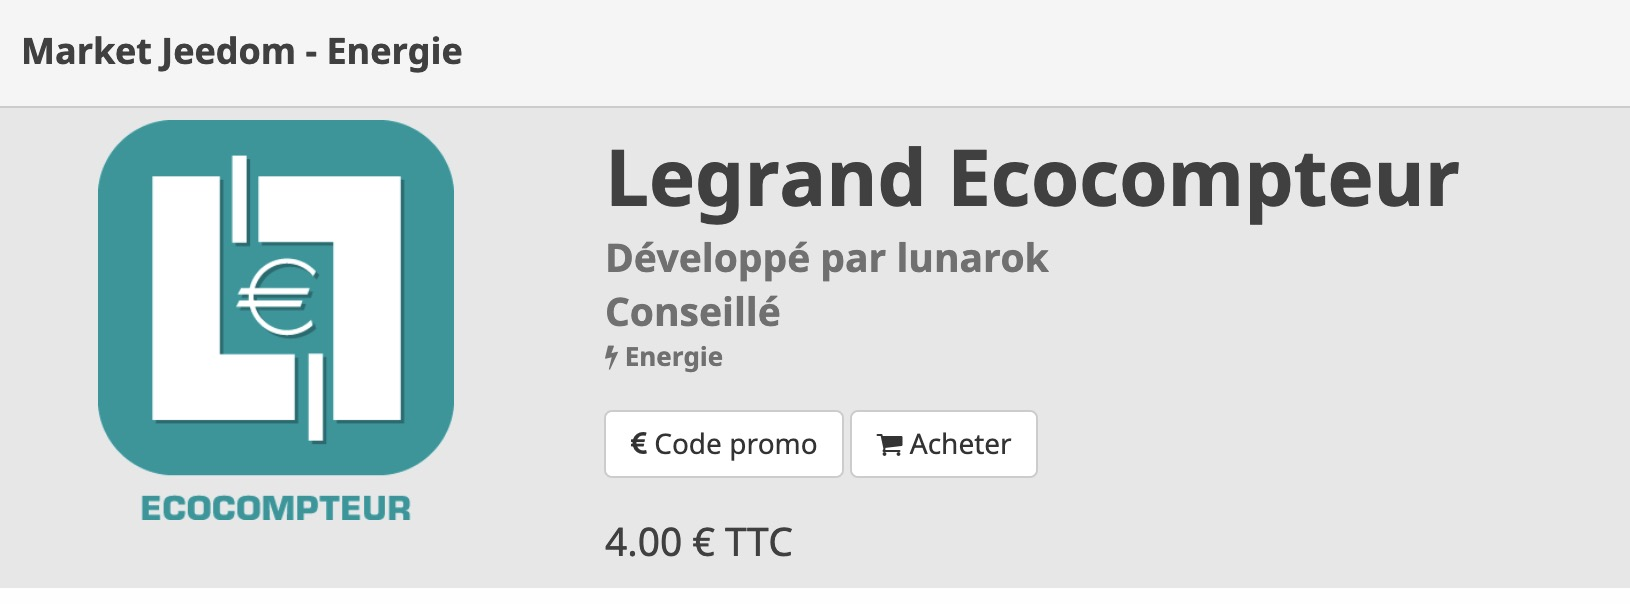 ecocompteur-legrand-plugin-jeedom